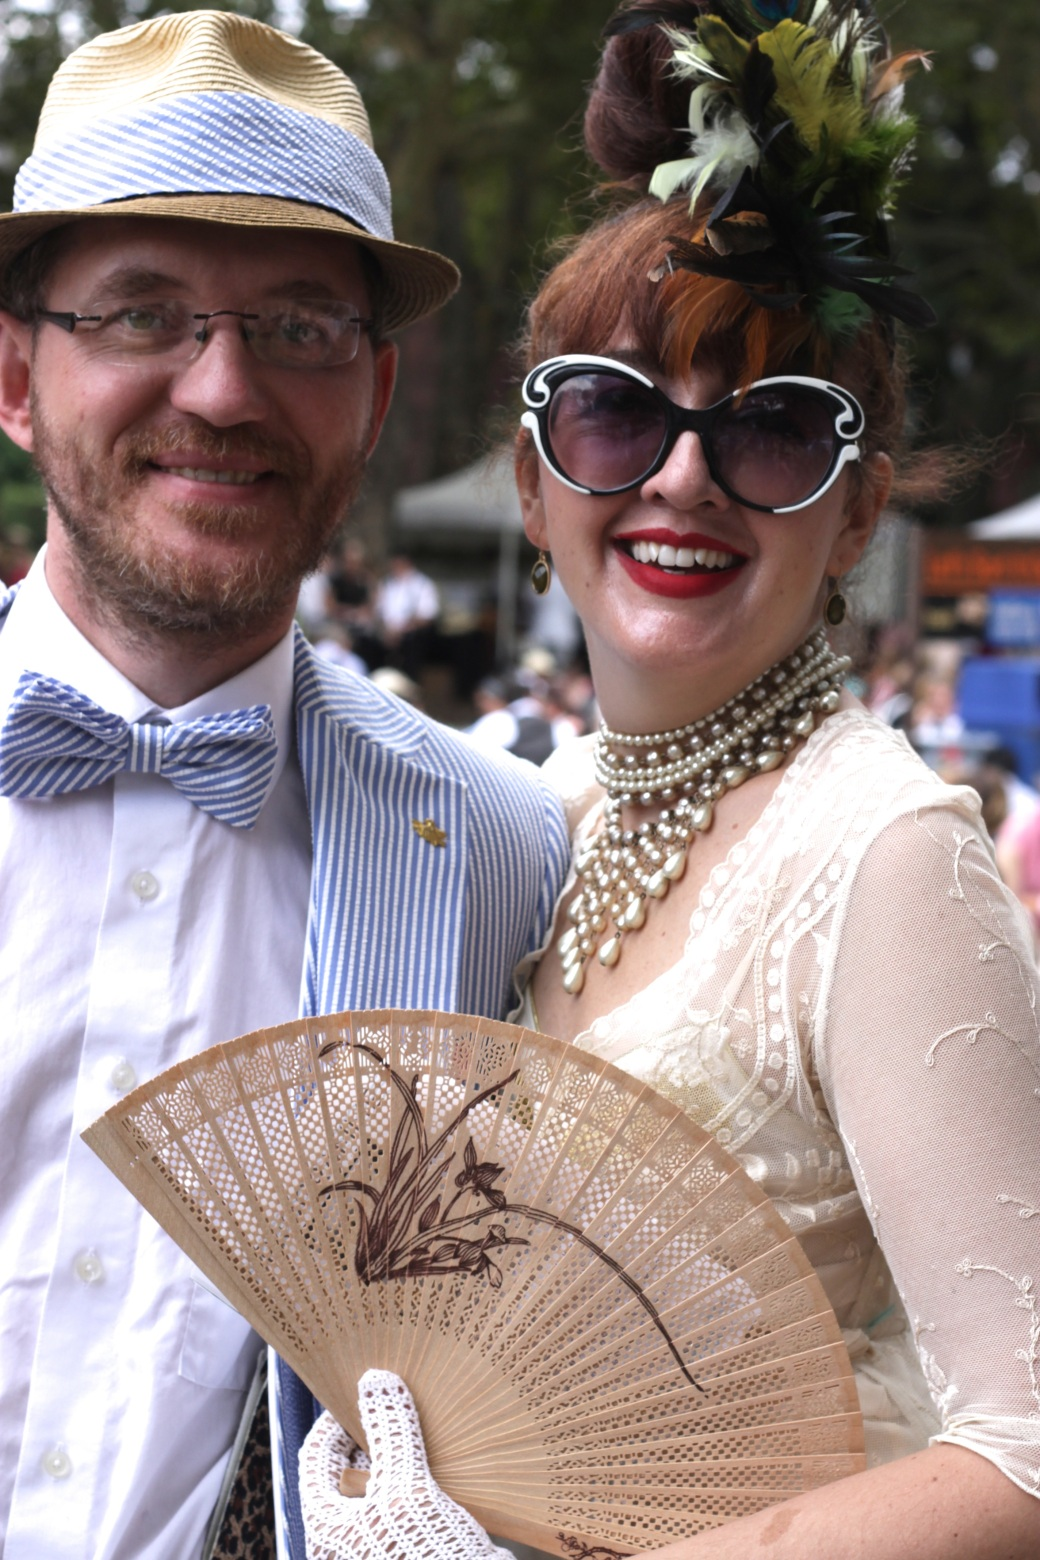 new york city governors island jazz age lawn party august 17 2014 78